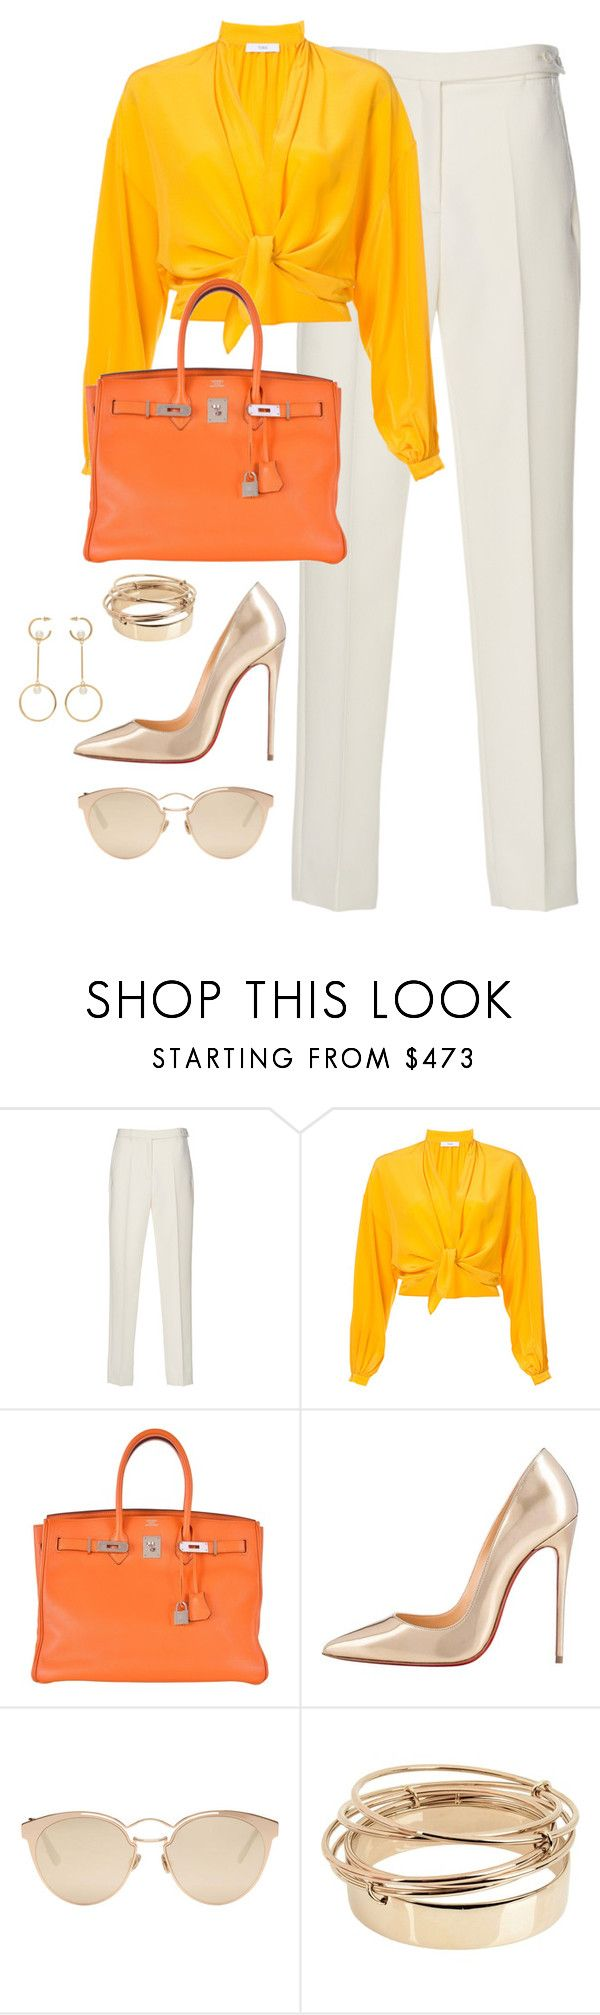 """""""Untitled #4748"""" by magsmccray ❤ liked on Polyvore featuring Tome, Hermès, Christian Louboutin, Christian Dior, Valentino and Chloé"""